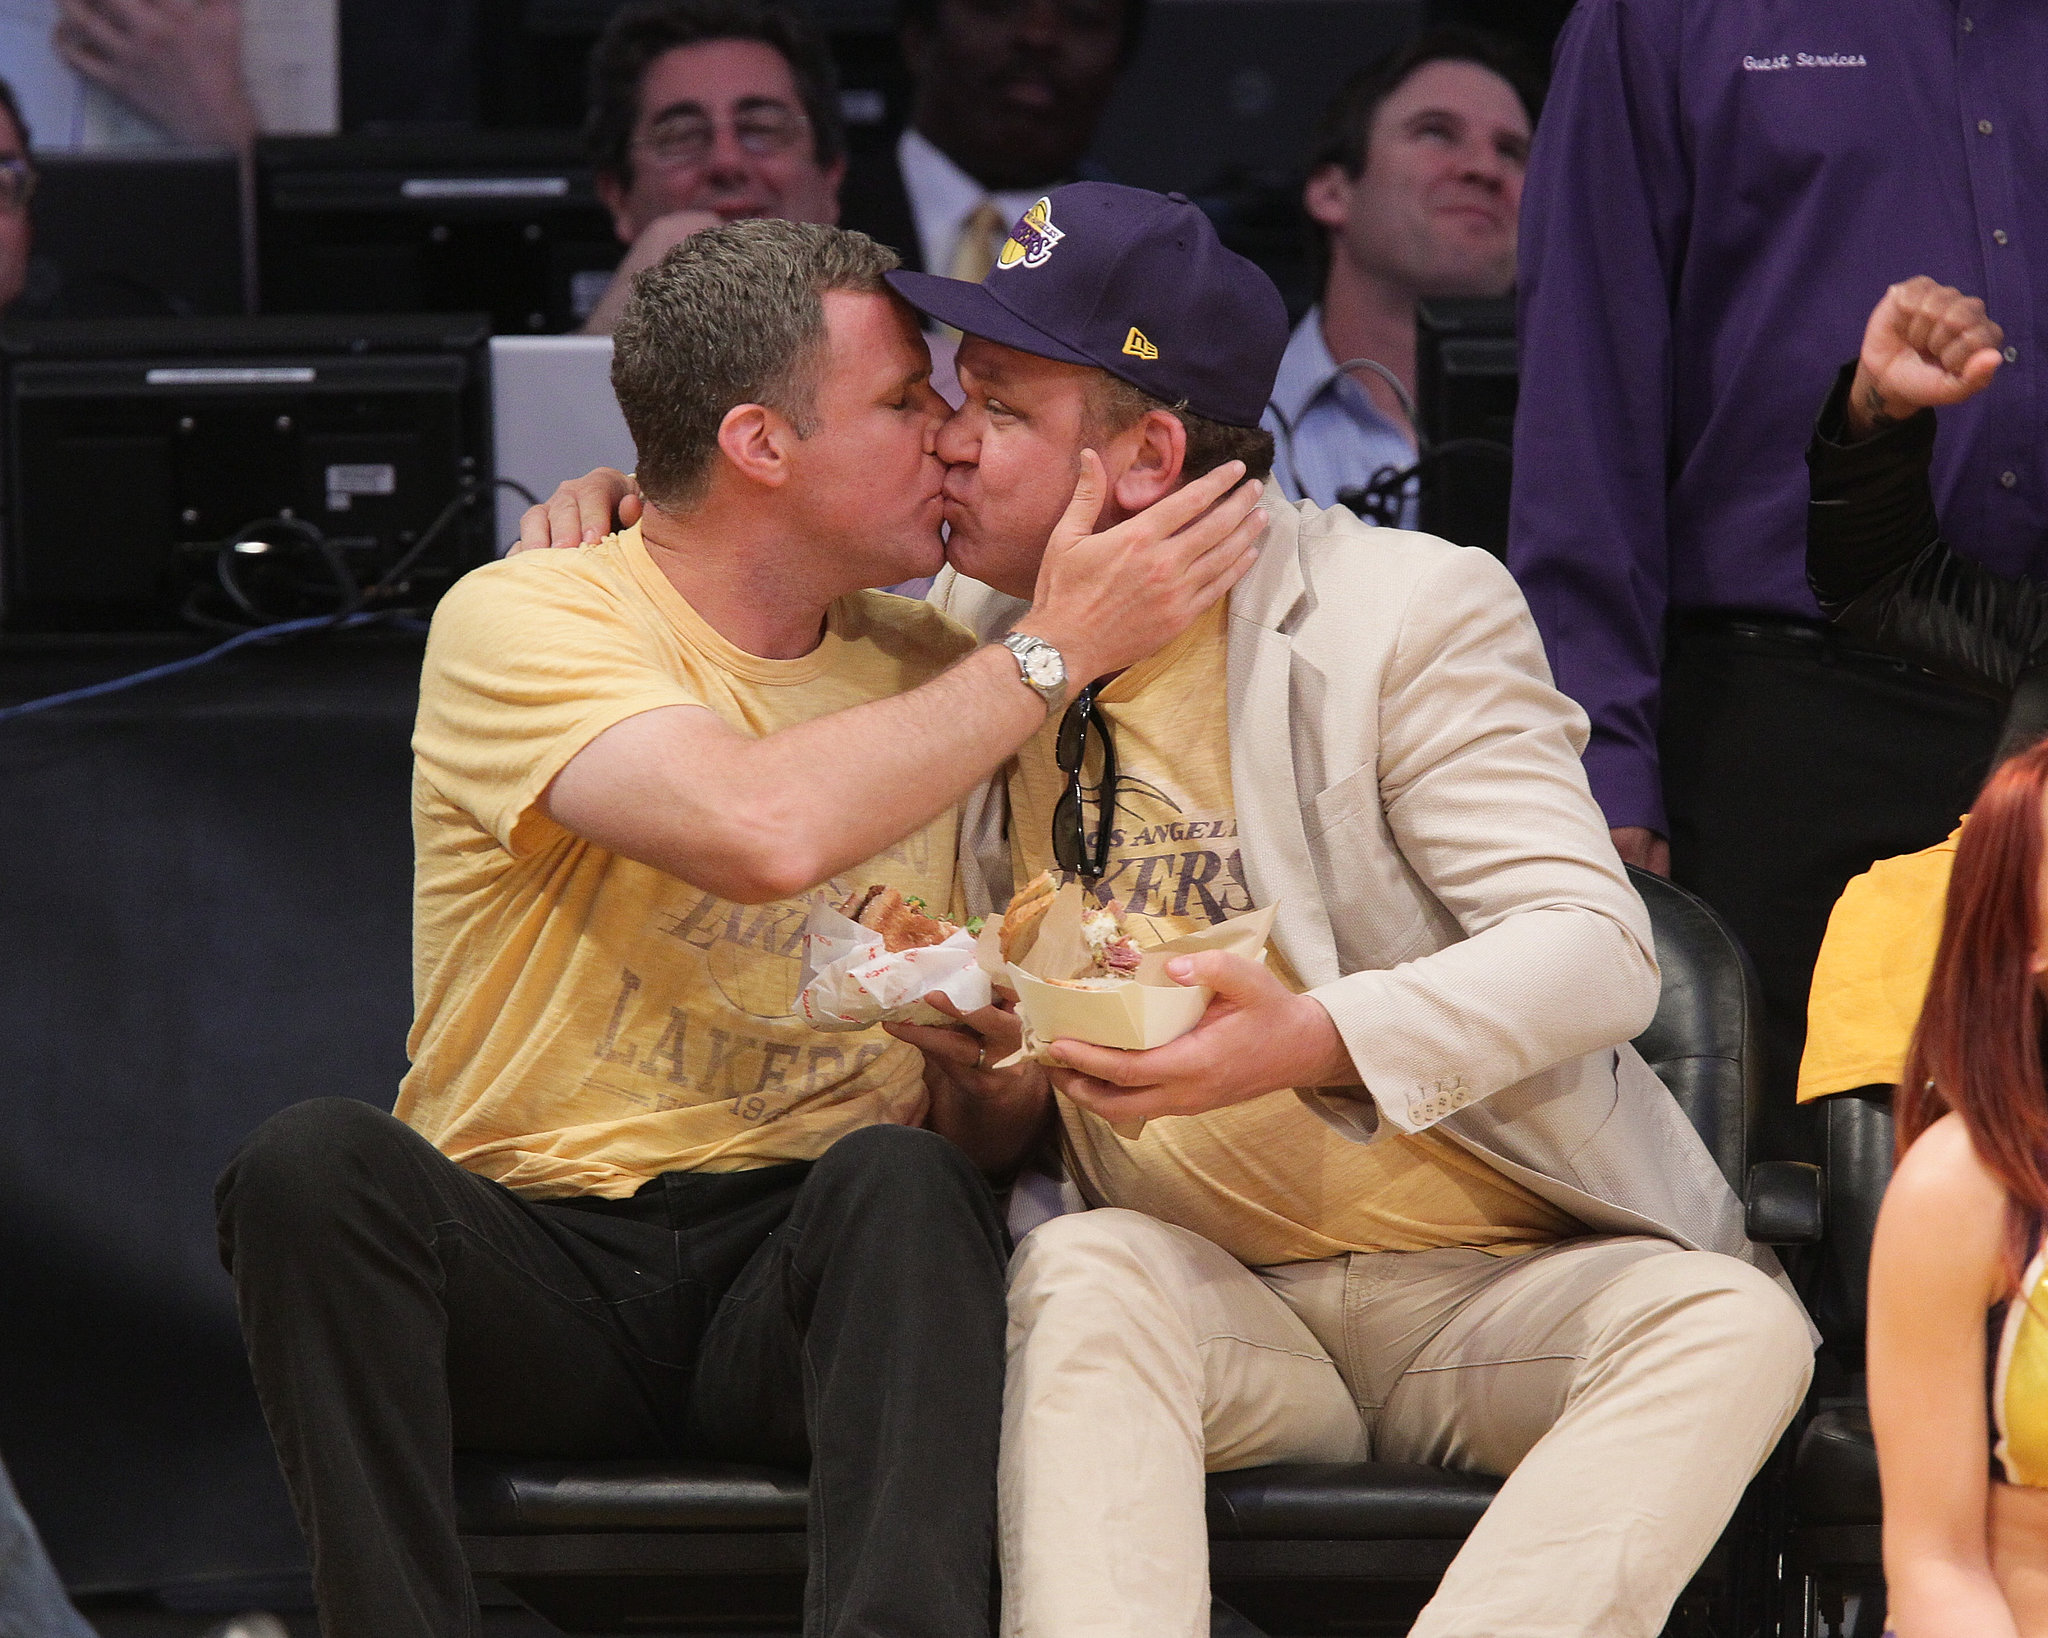 Will Ferrell and John C. Reilly have never been shy about their relationship. The